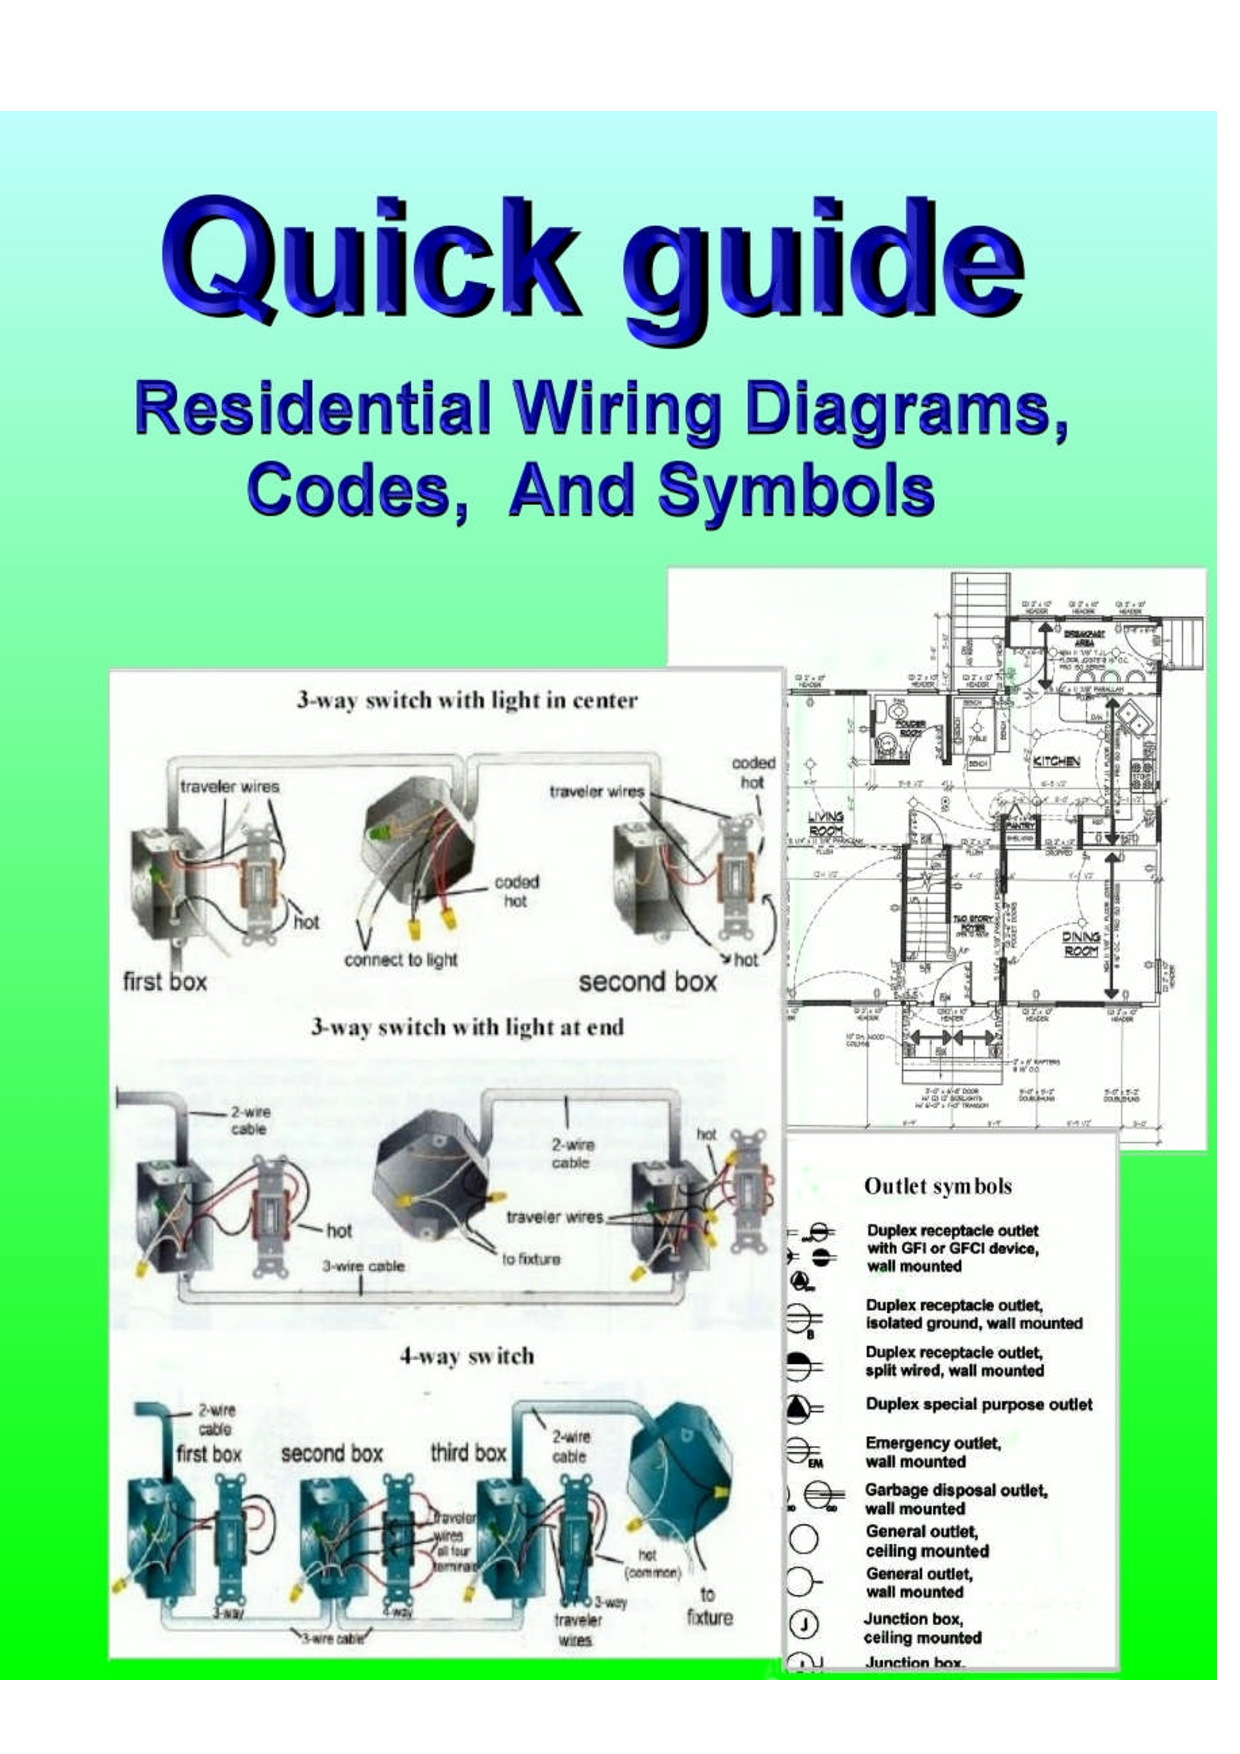 medium resolution of a step by step home wiring guide with diagrams symbols and electrical codes